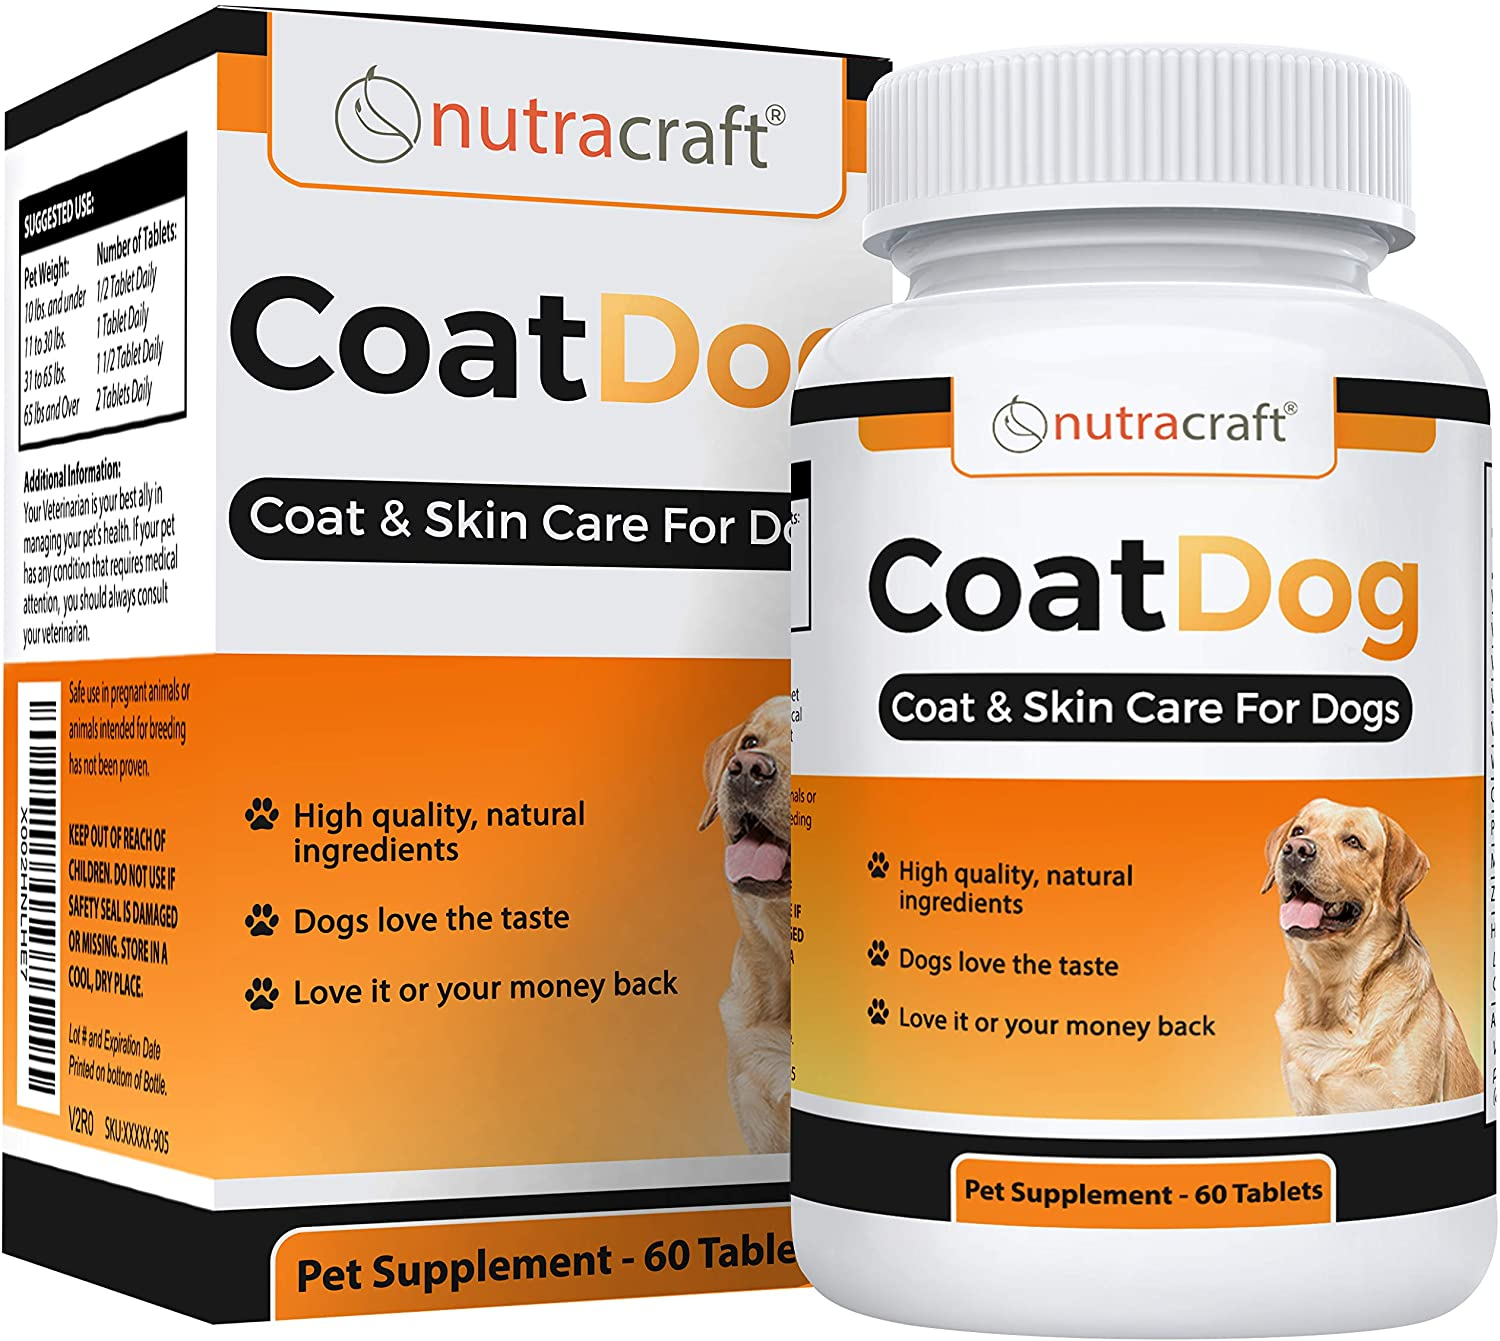 Nutracraft CoatDog Skin and Coat Supplement for Dogs - Advanced Wellness Blend for Dry, Itchy, Flaky Skin and a Lacklustre Coat - 60 Tablets